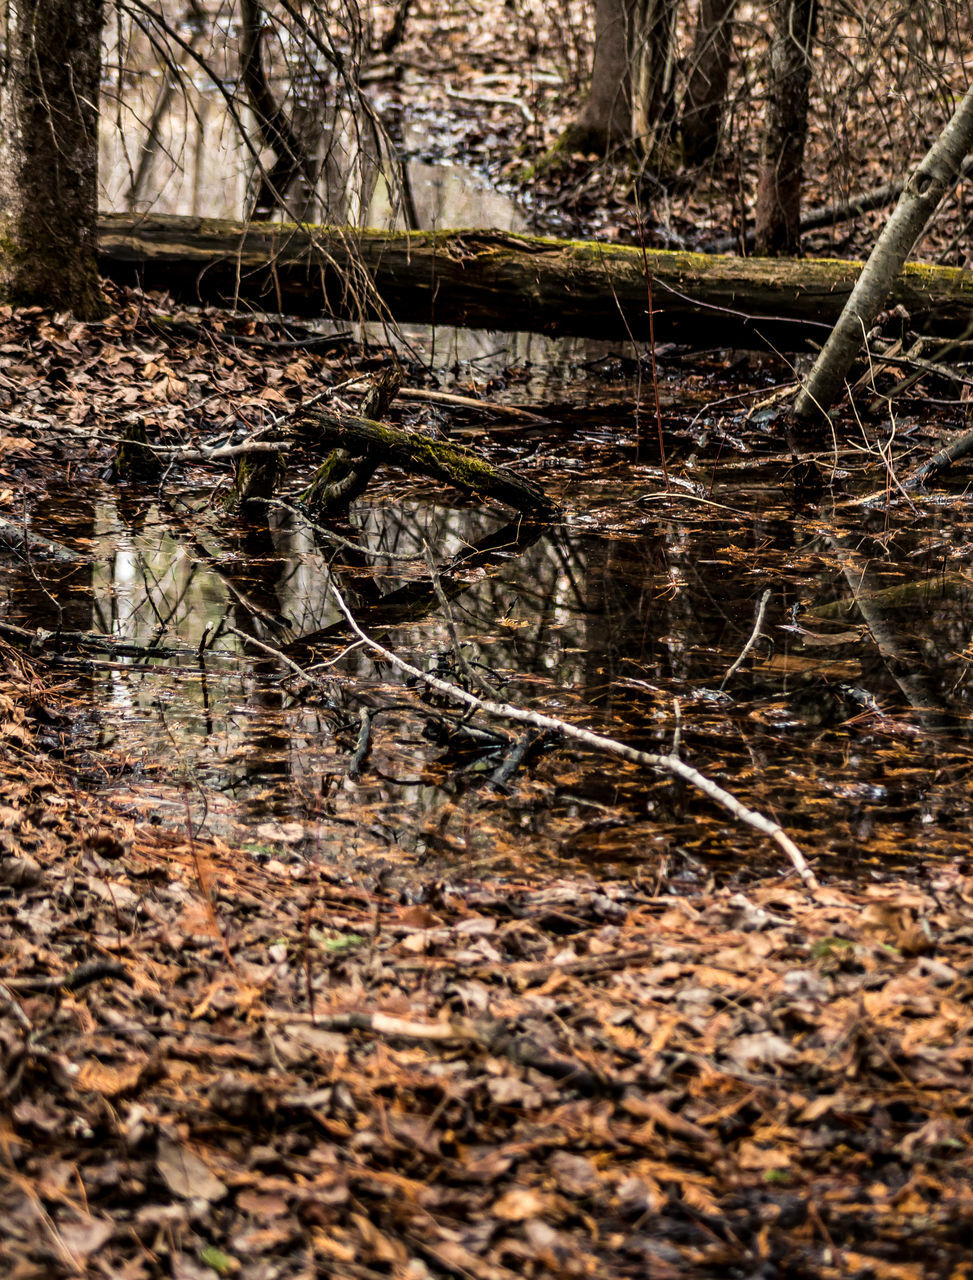 nature, no people, outdoors, tree, swamp, reflection, day, water, one animal, forest, reptile, animal themes, tree trunk, branch, animals in the wild, beauty in nature, alligator, close-up